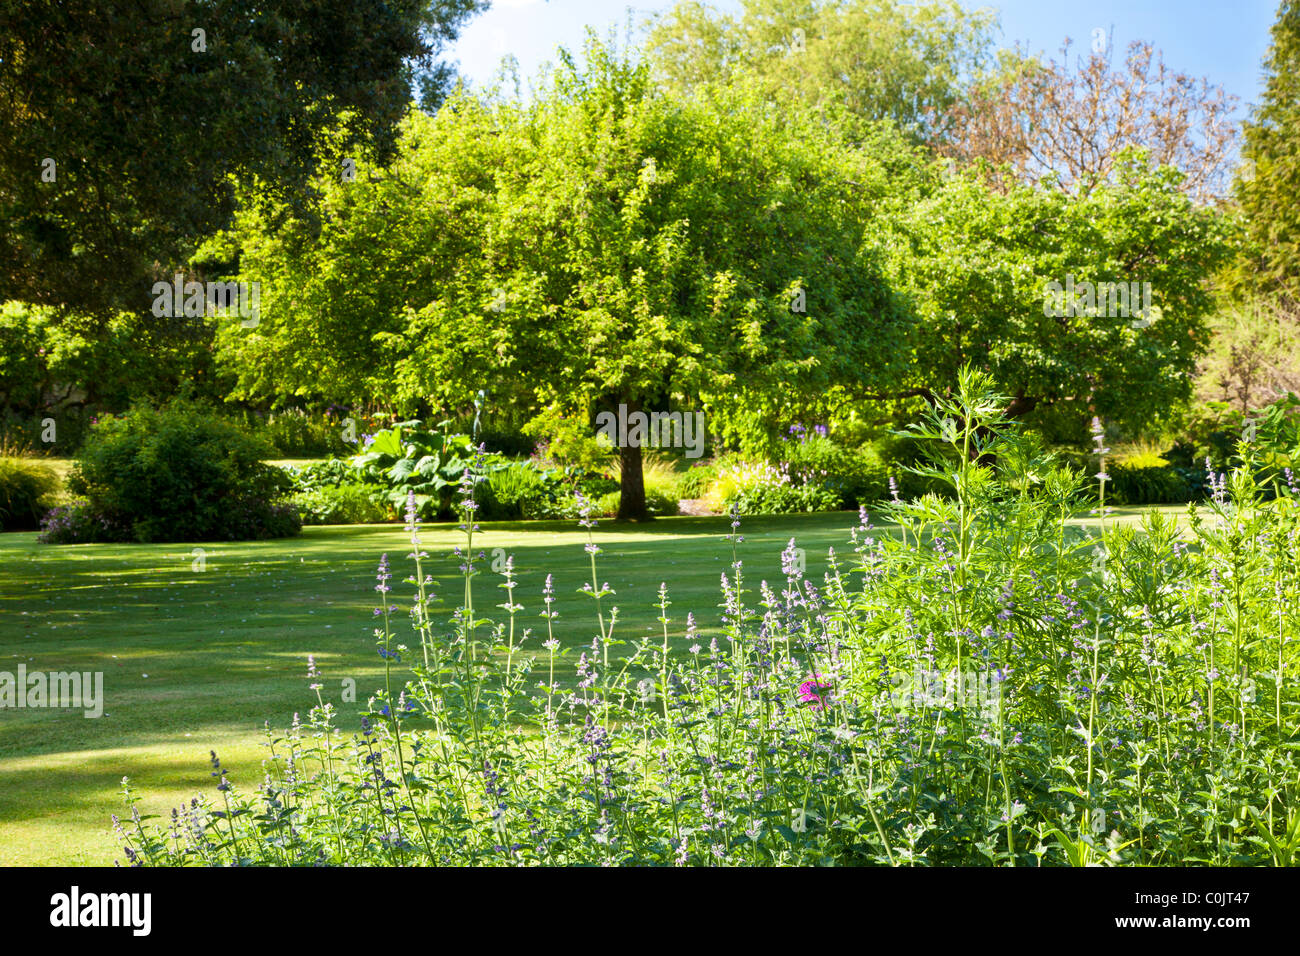 The Lawn Of An English Country Garden Surrounded By Trees